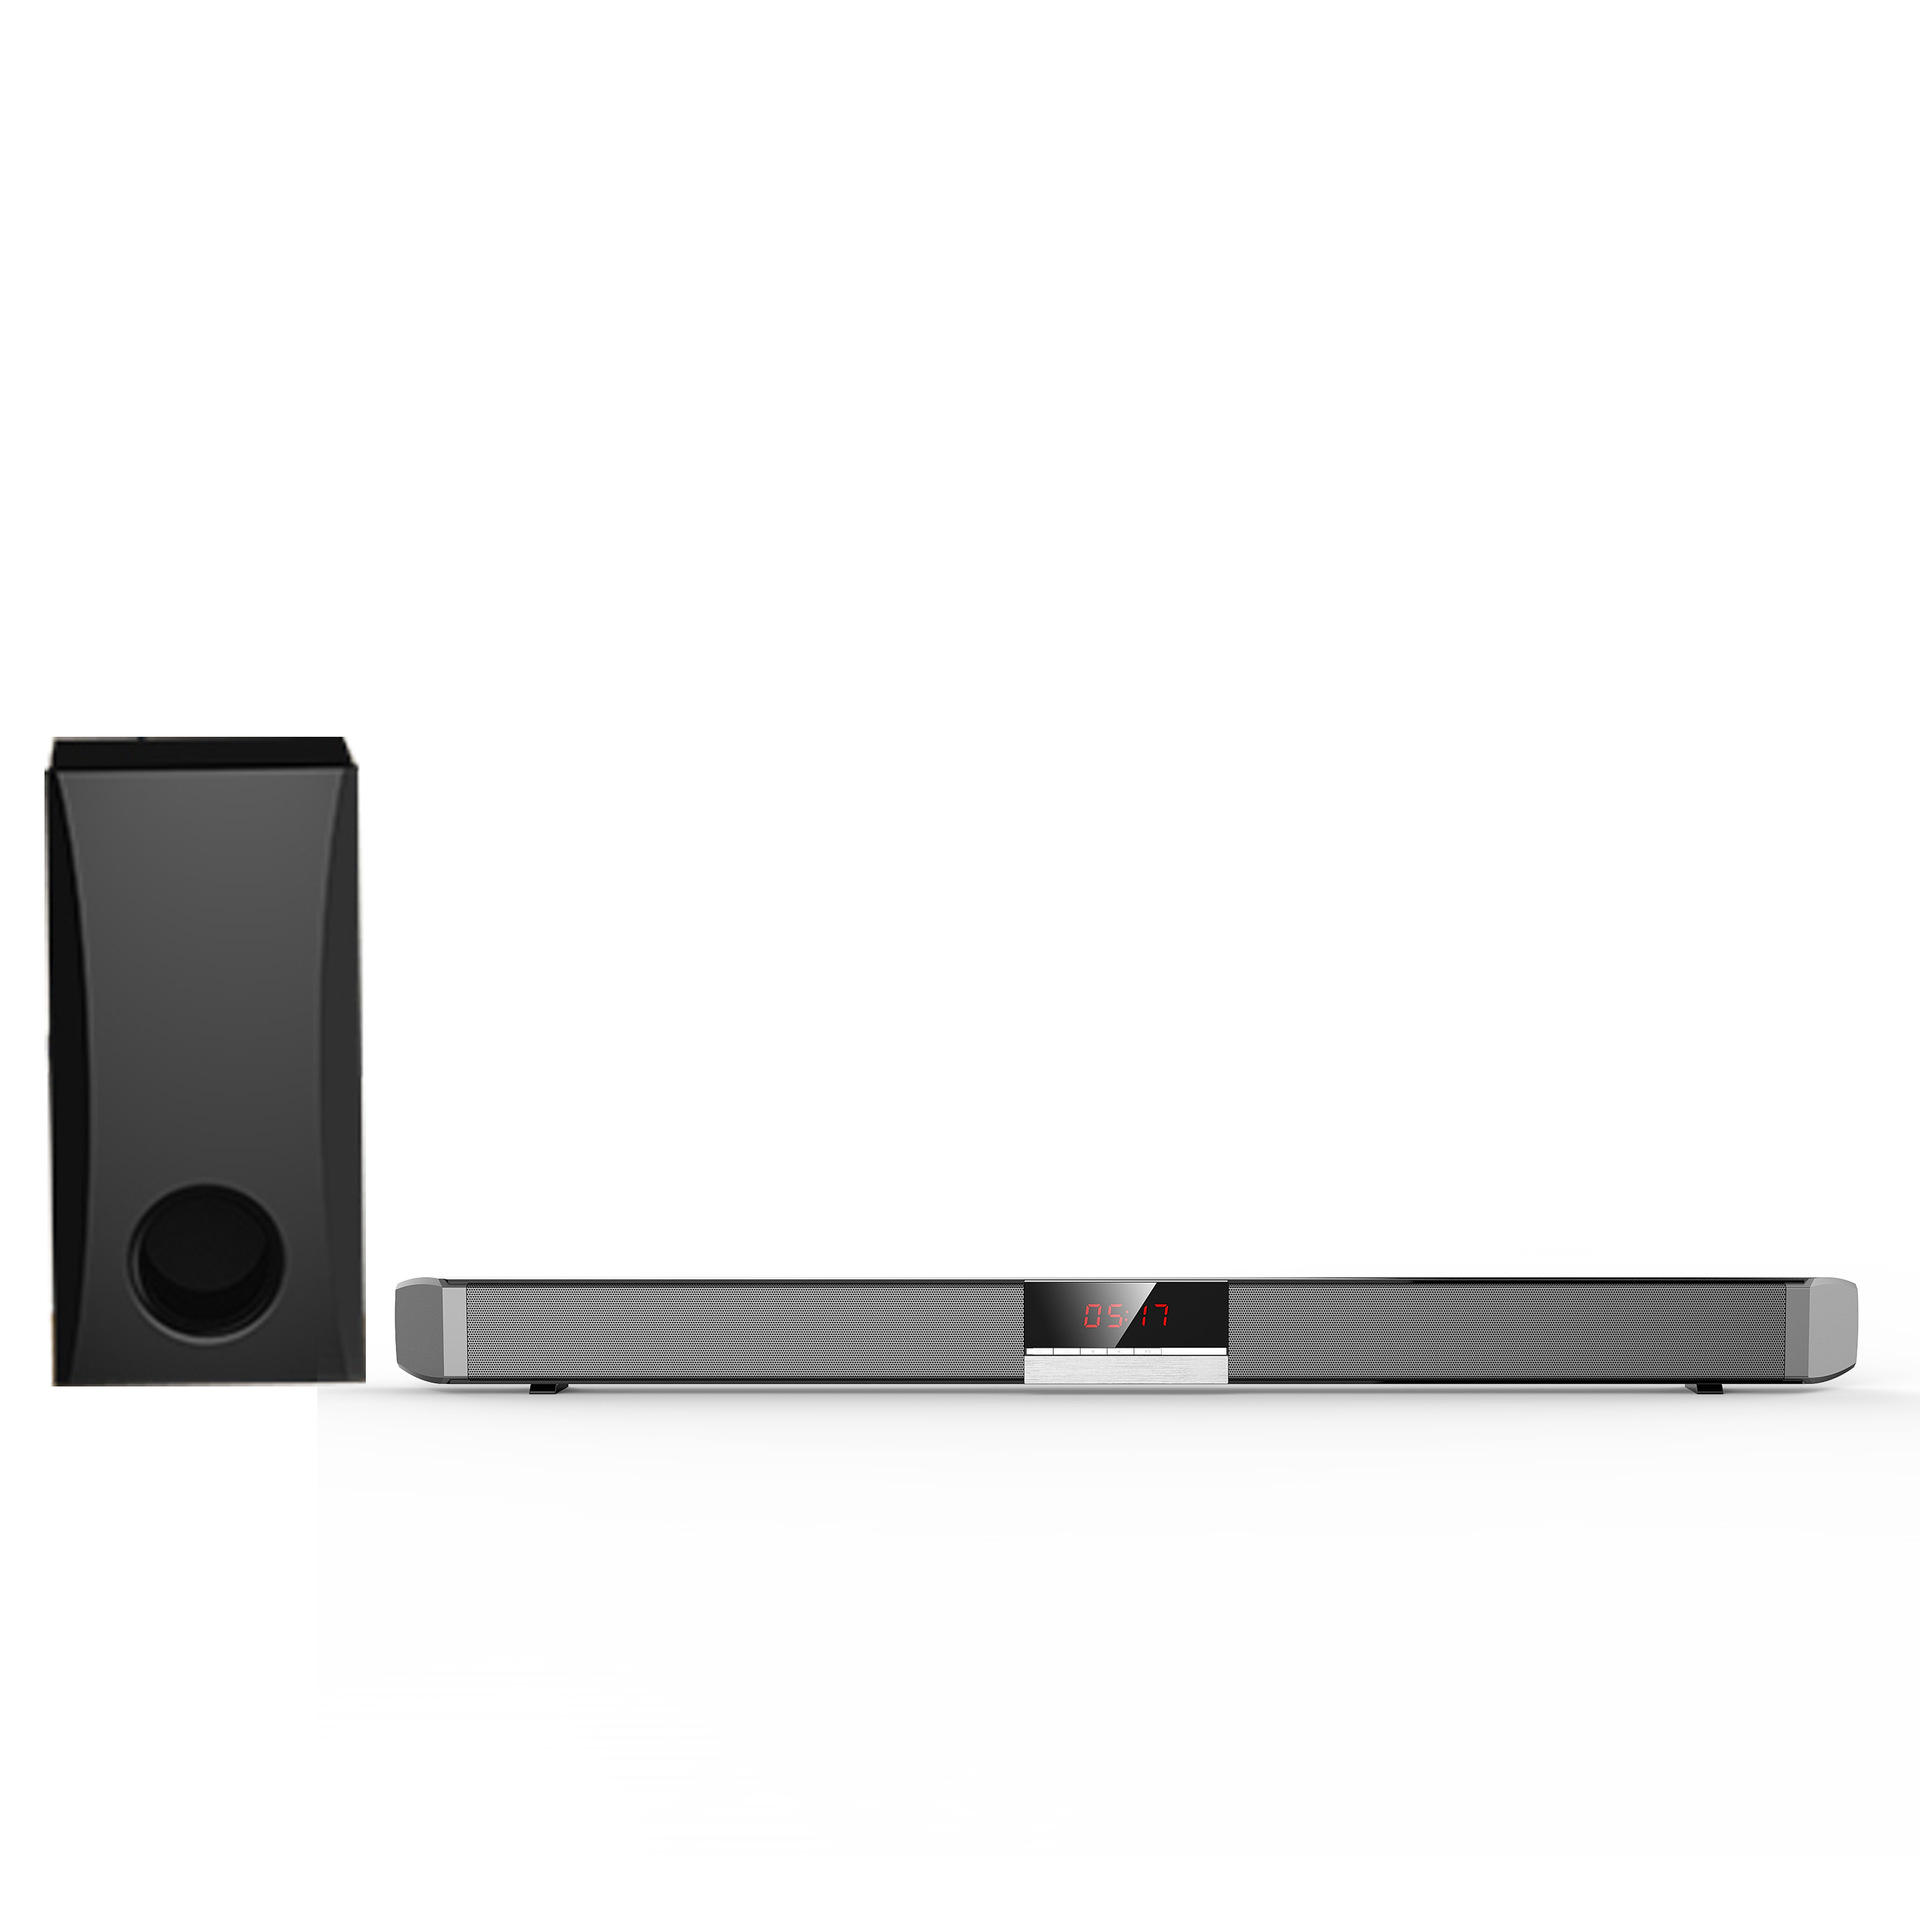 samtromic 2.1ch soundbar speaker with wired subwoofer, 37 inches tv surround sound bar home theatre system